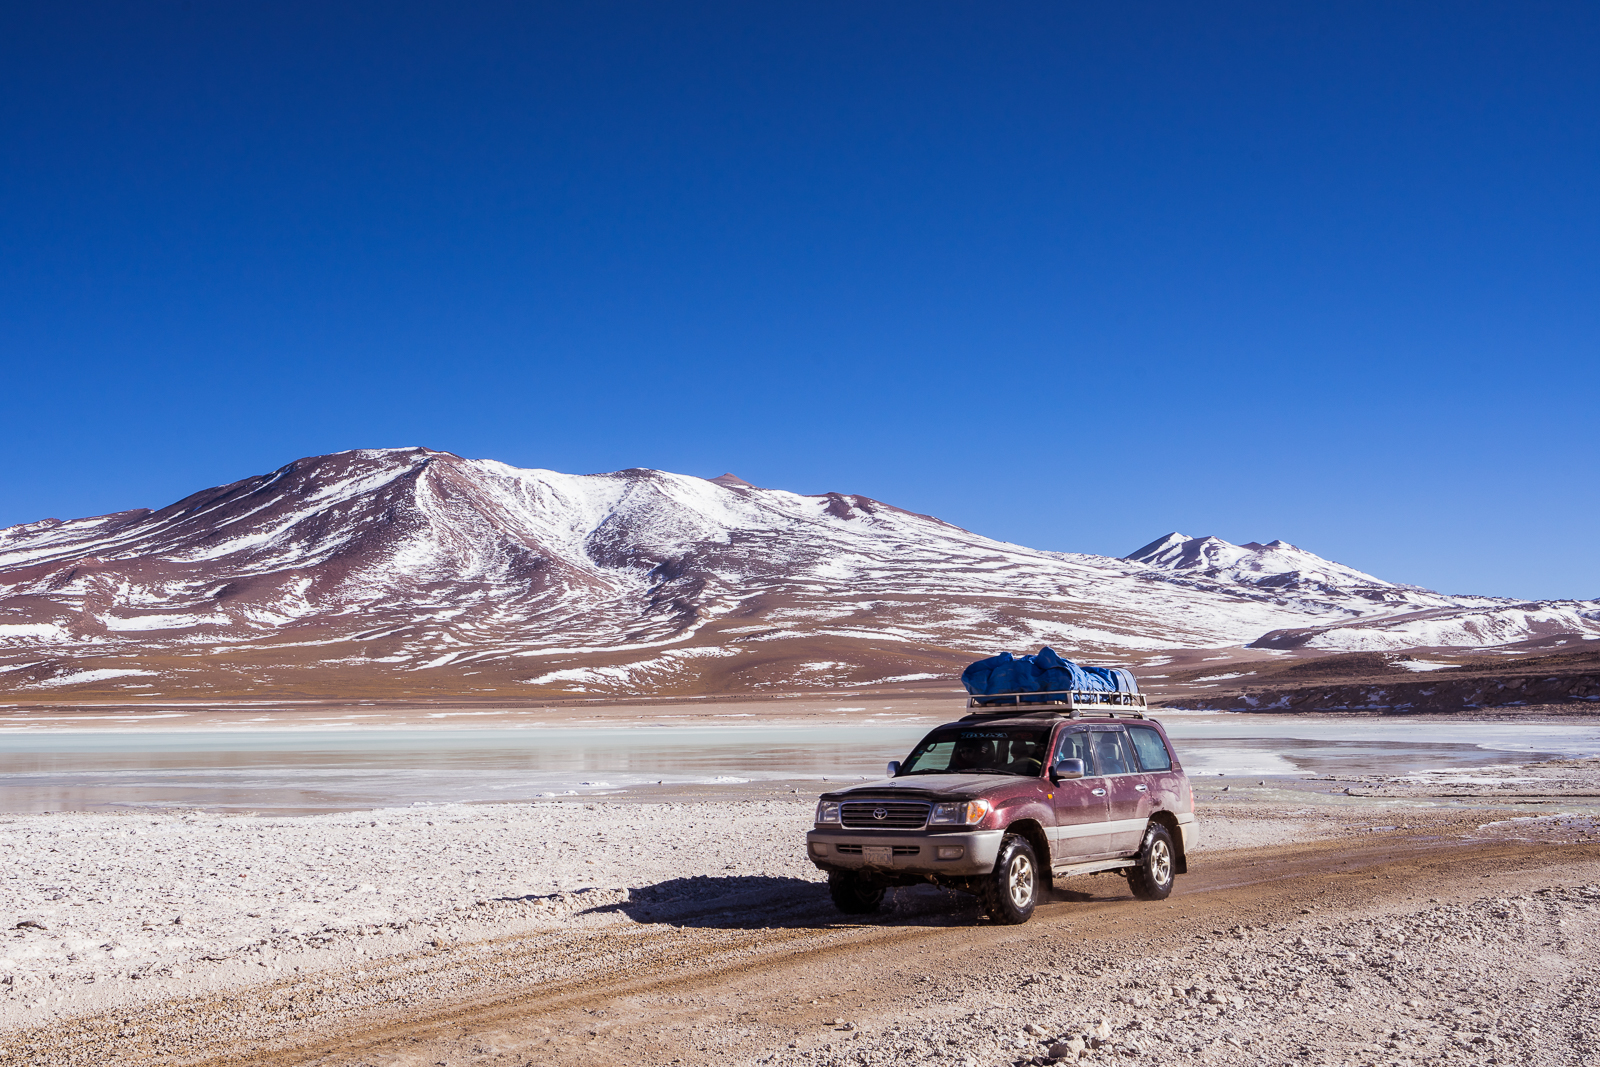 On the road through the Altiplano